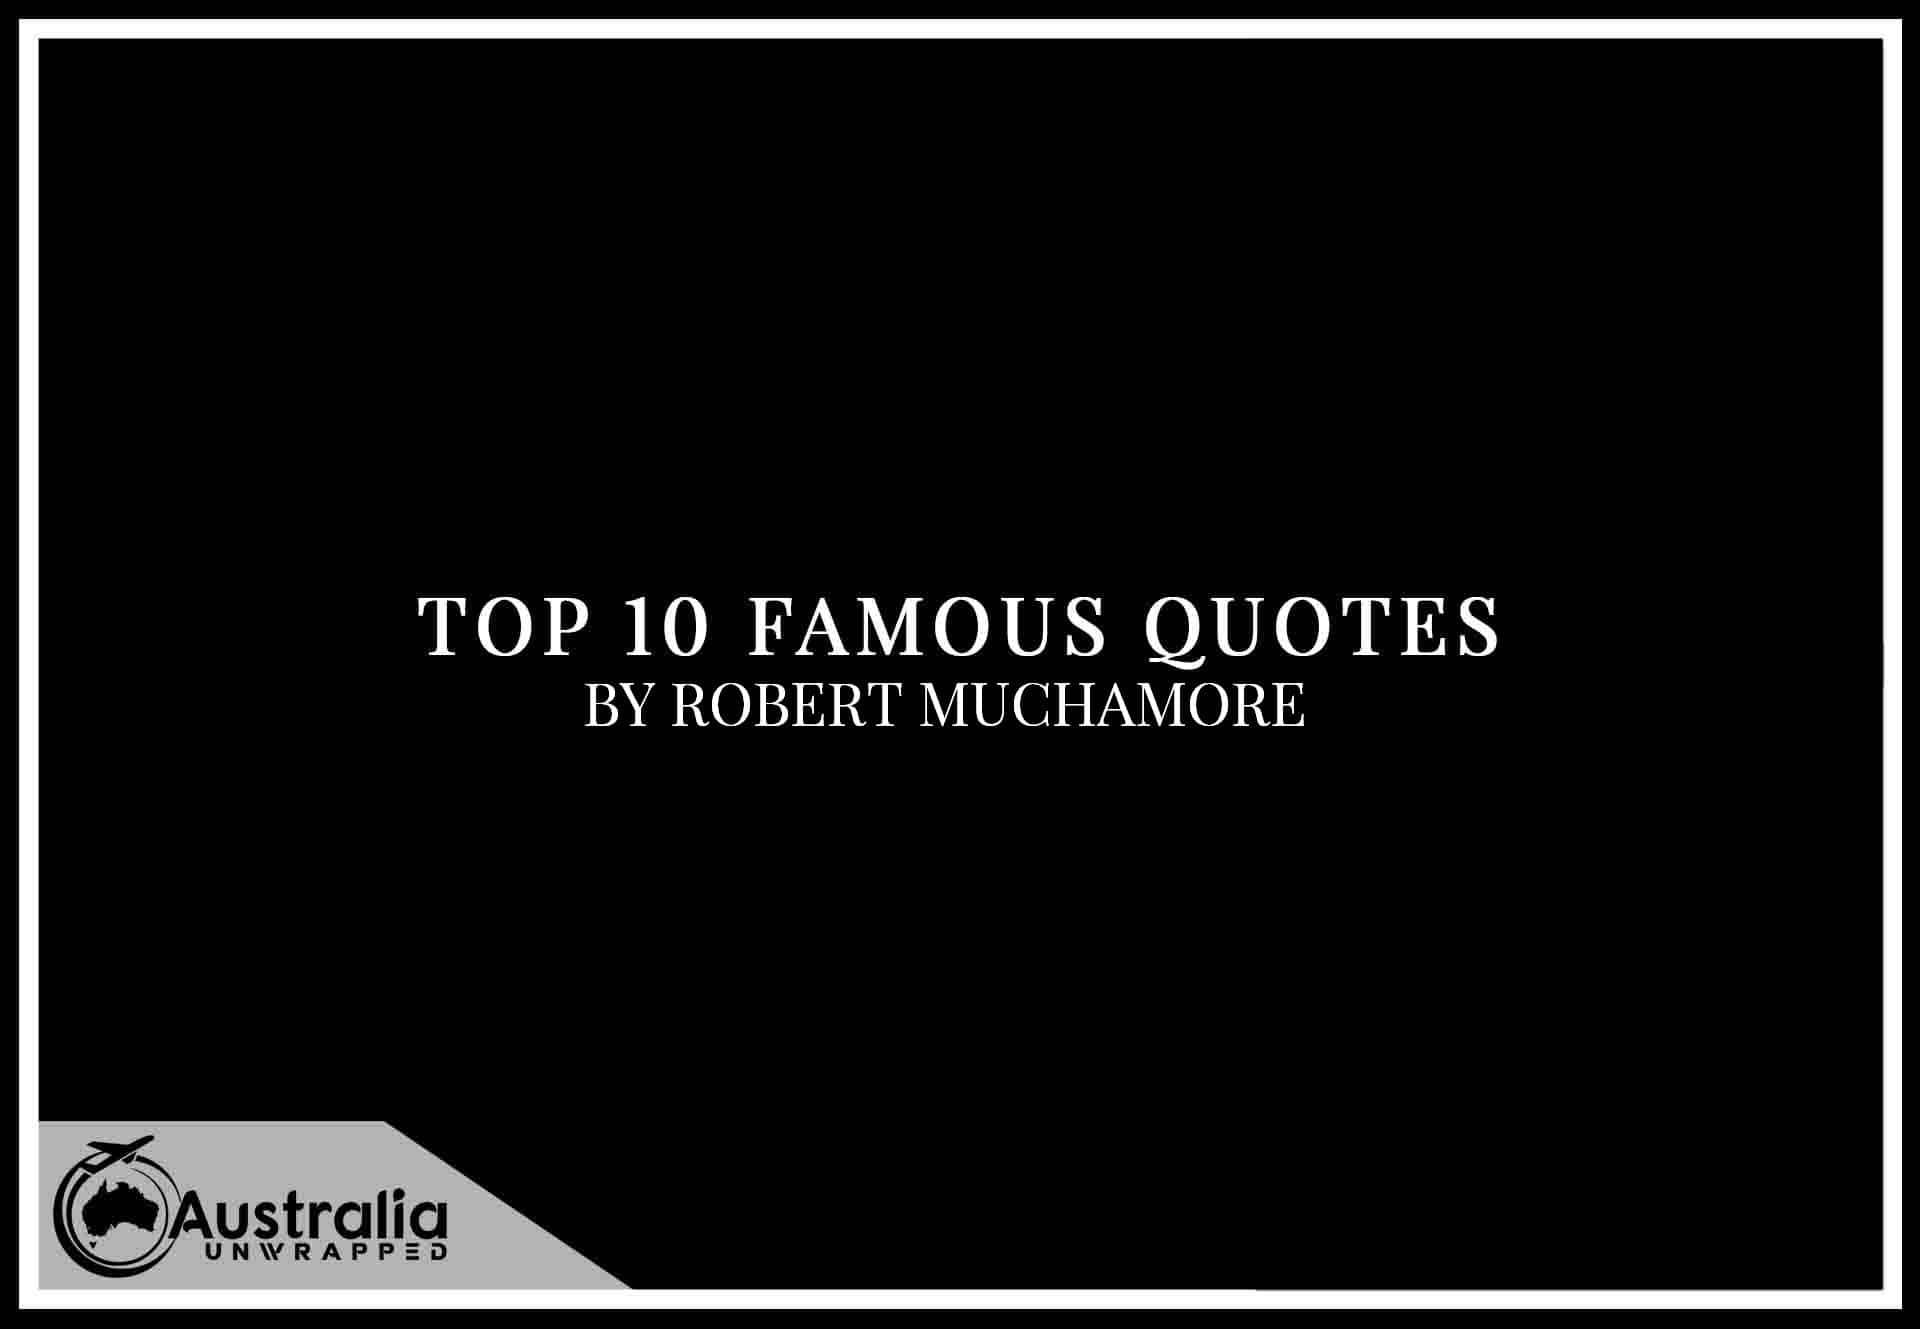 Top 10 Famous Quotes by Author Robert Muchamore